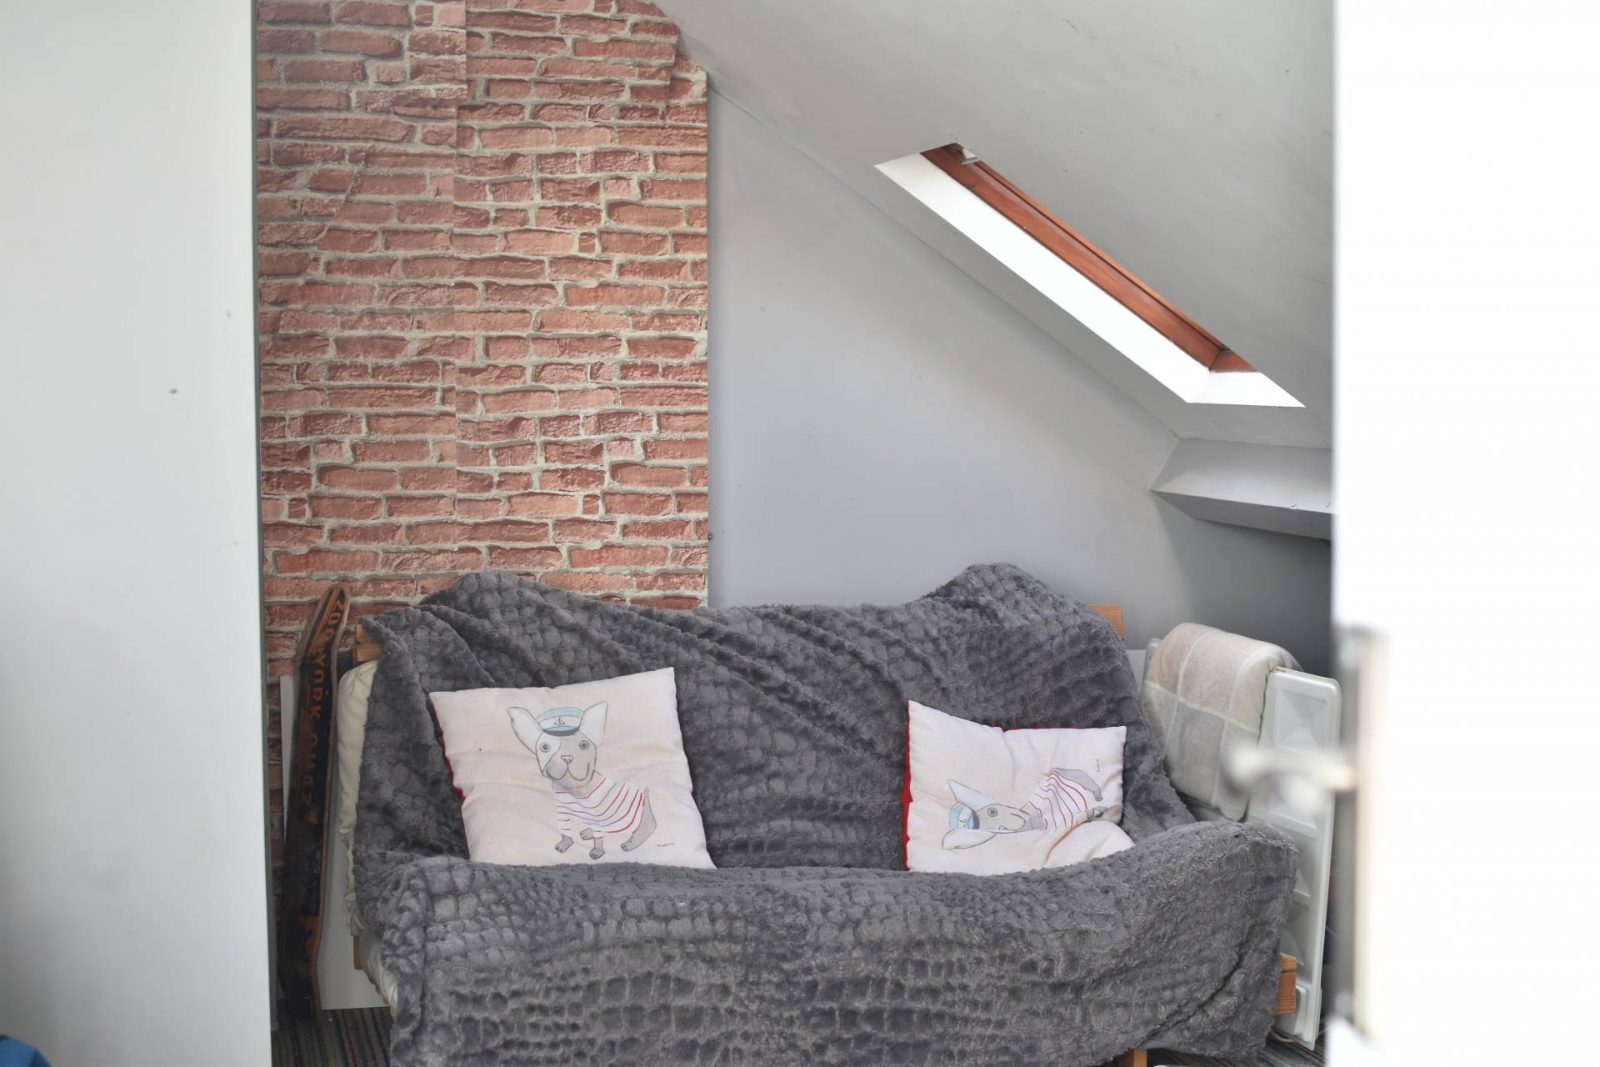 just a few things you could consider before starting a loft conversion